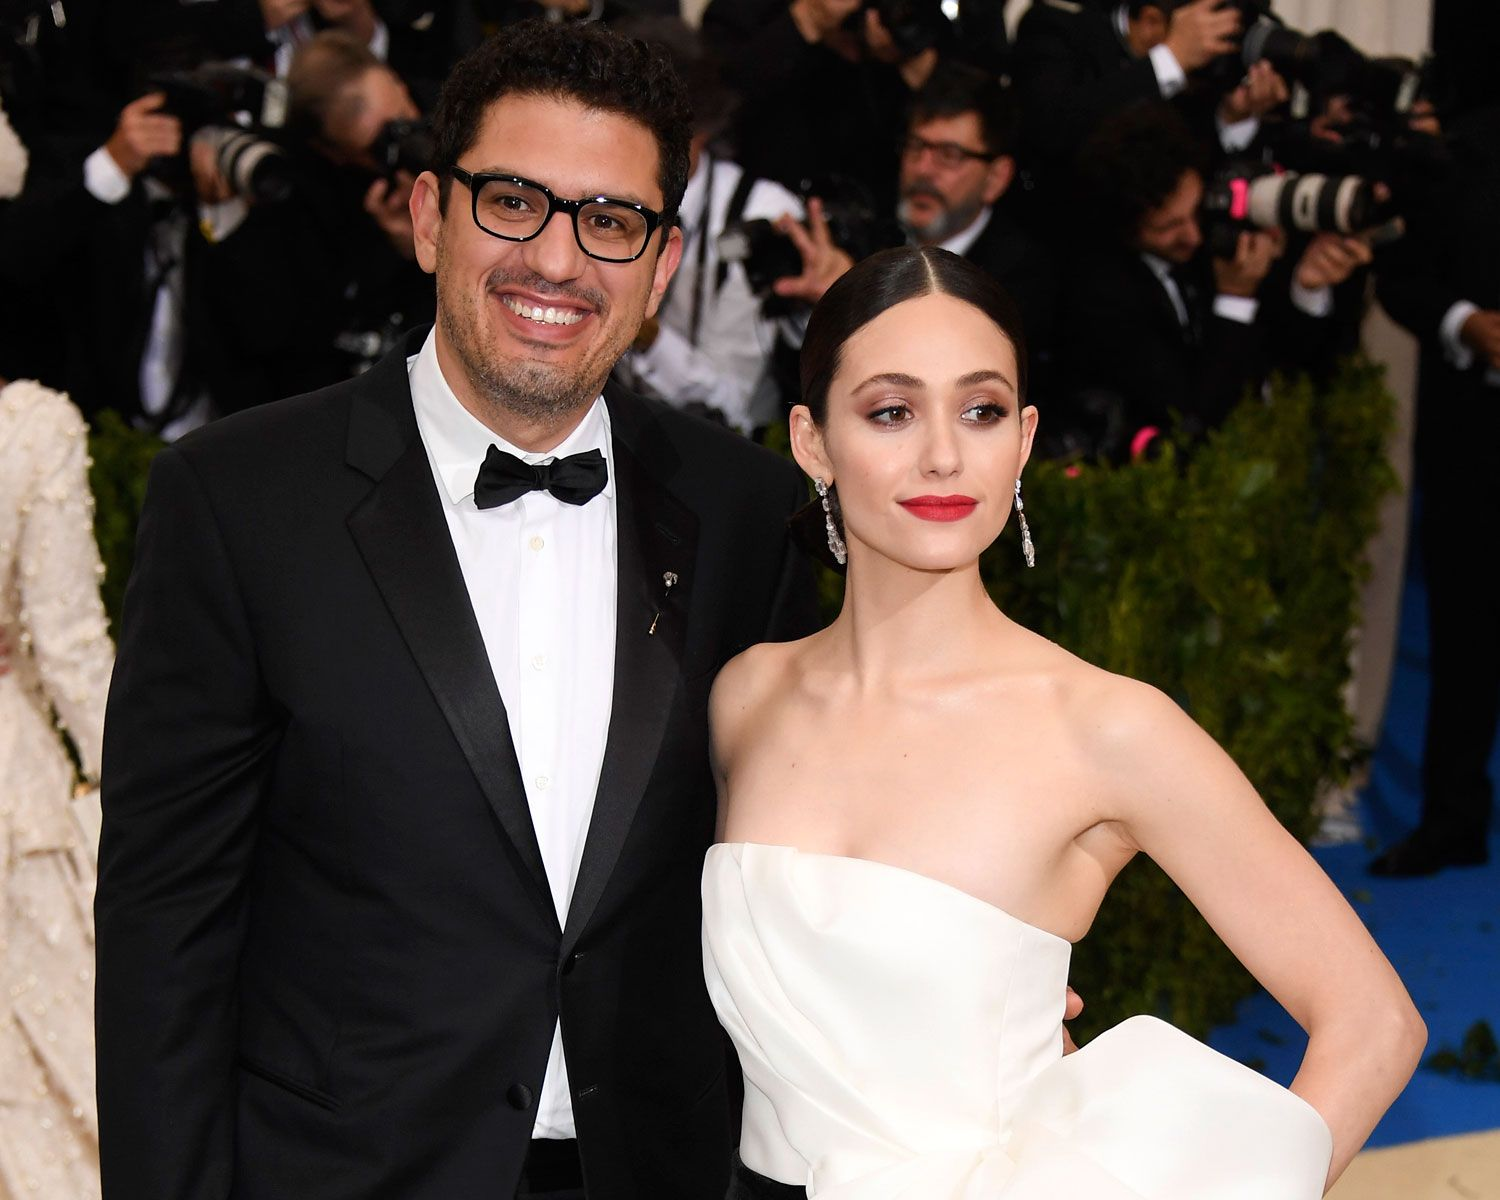 emmy rossum shares first wedding photos after marrying sam esmail